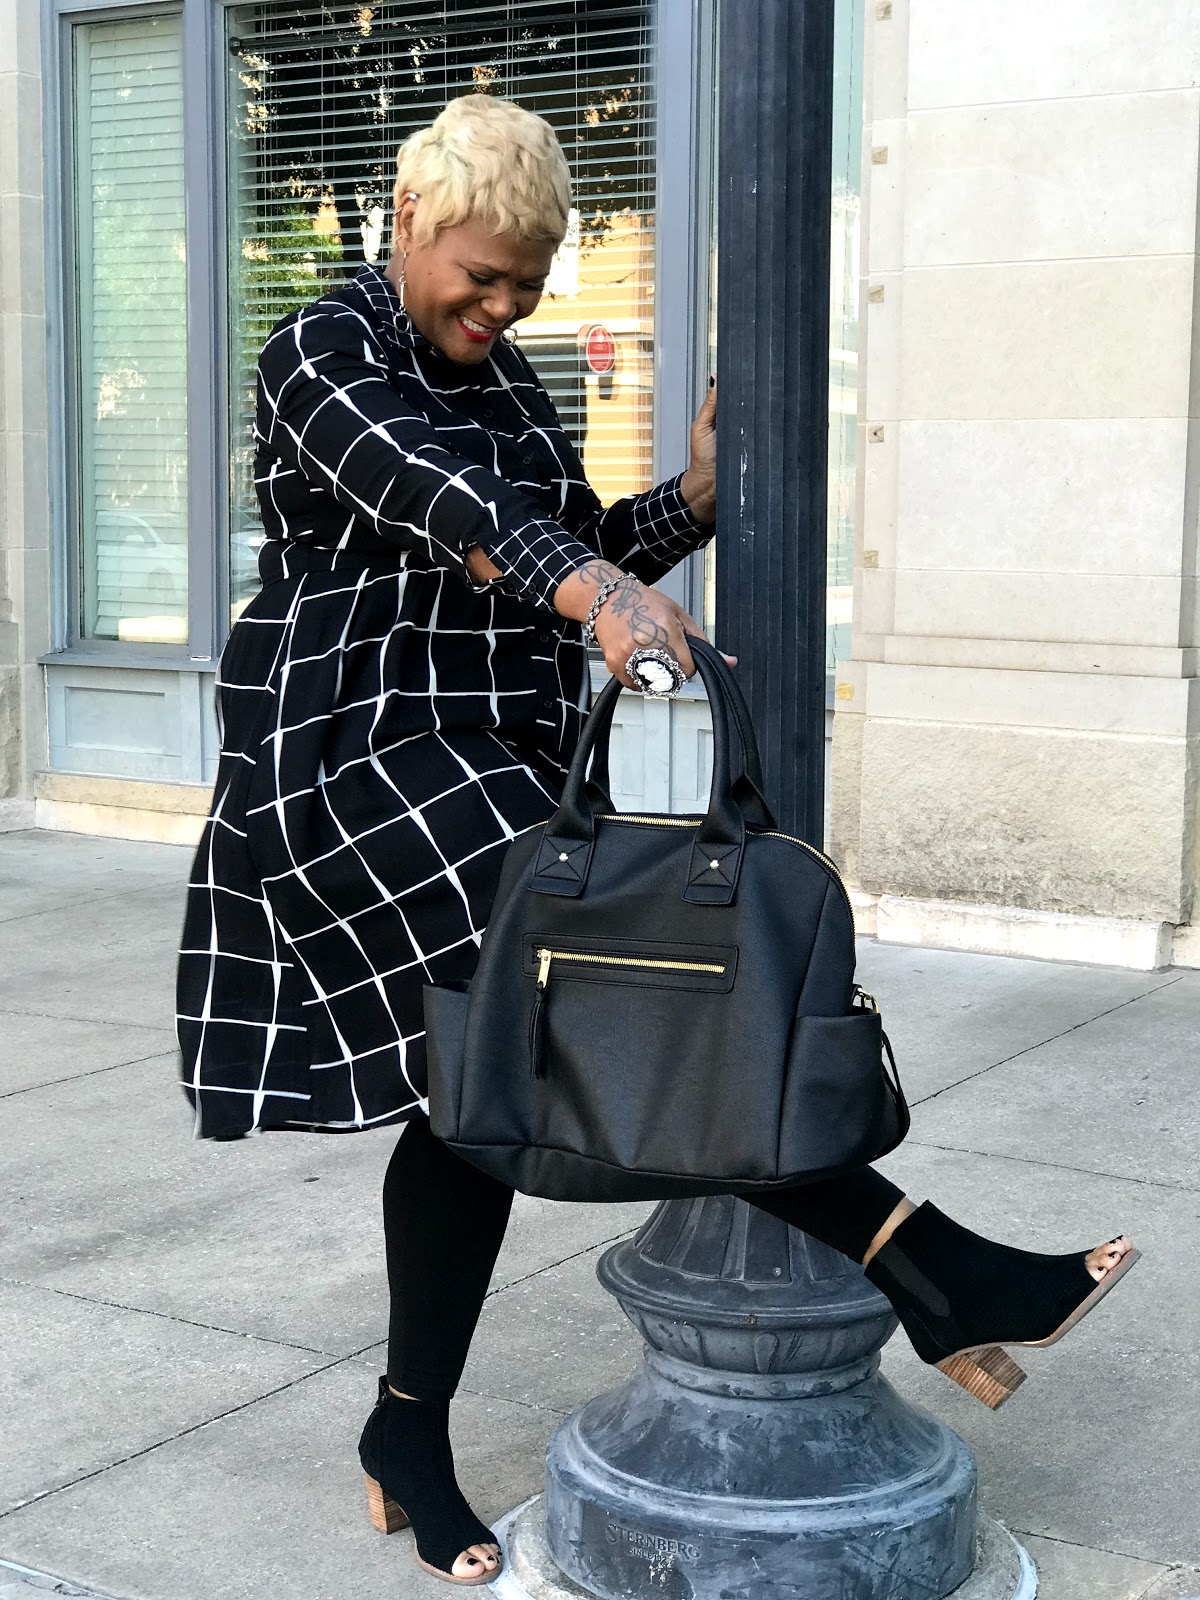 Image: Woman (Tangie Bell is sharing her Outfit Of The Day and how she styled it for Easter Sunday